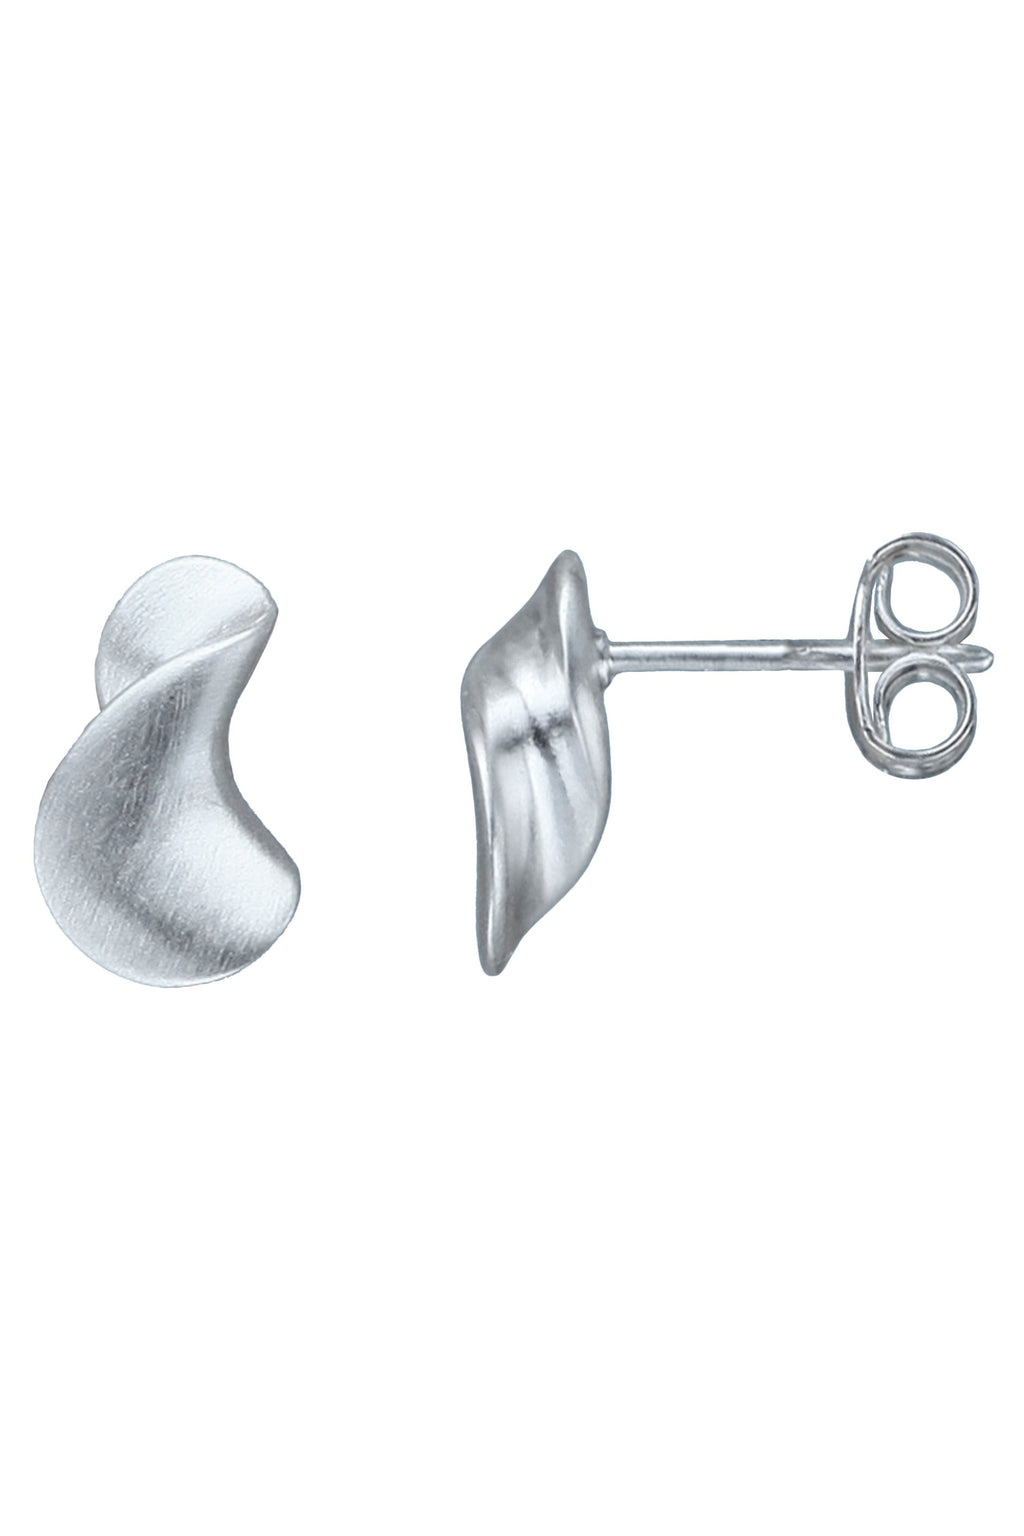 Silver Pegasus Twist Stud Earrings / Nina B Jewellery